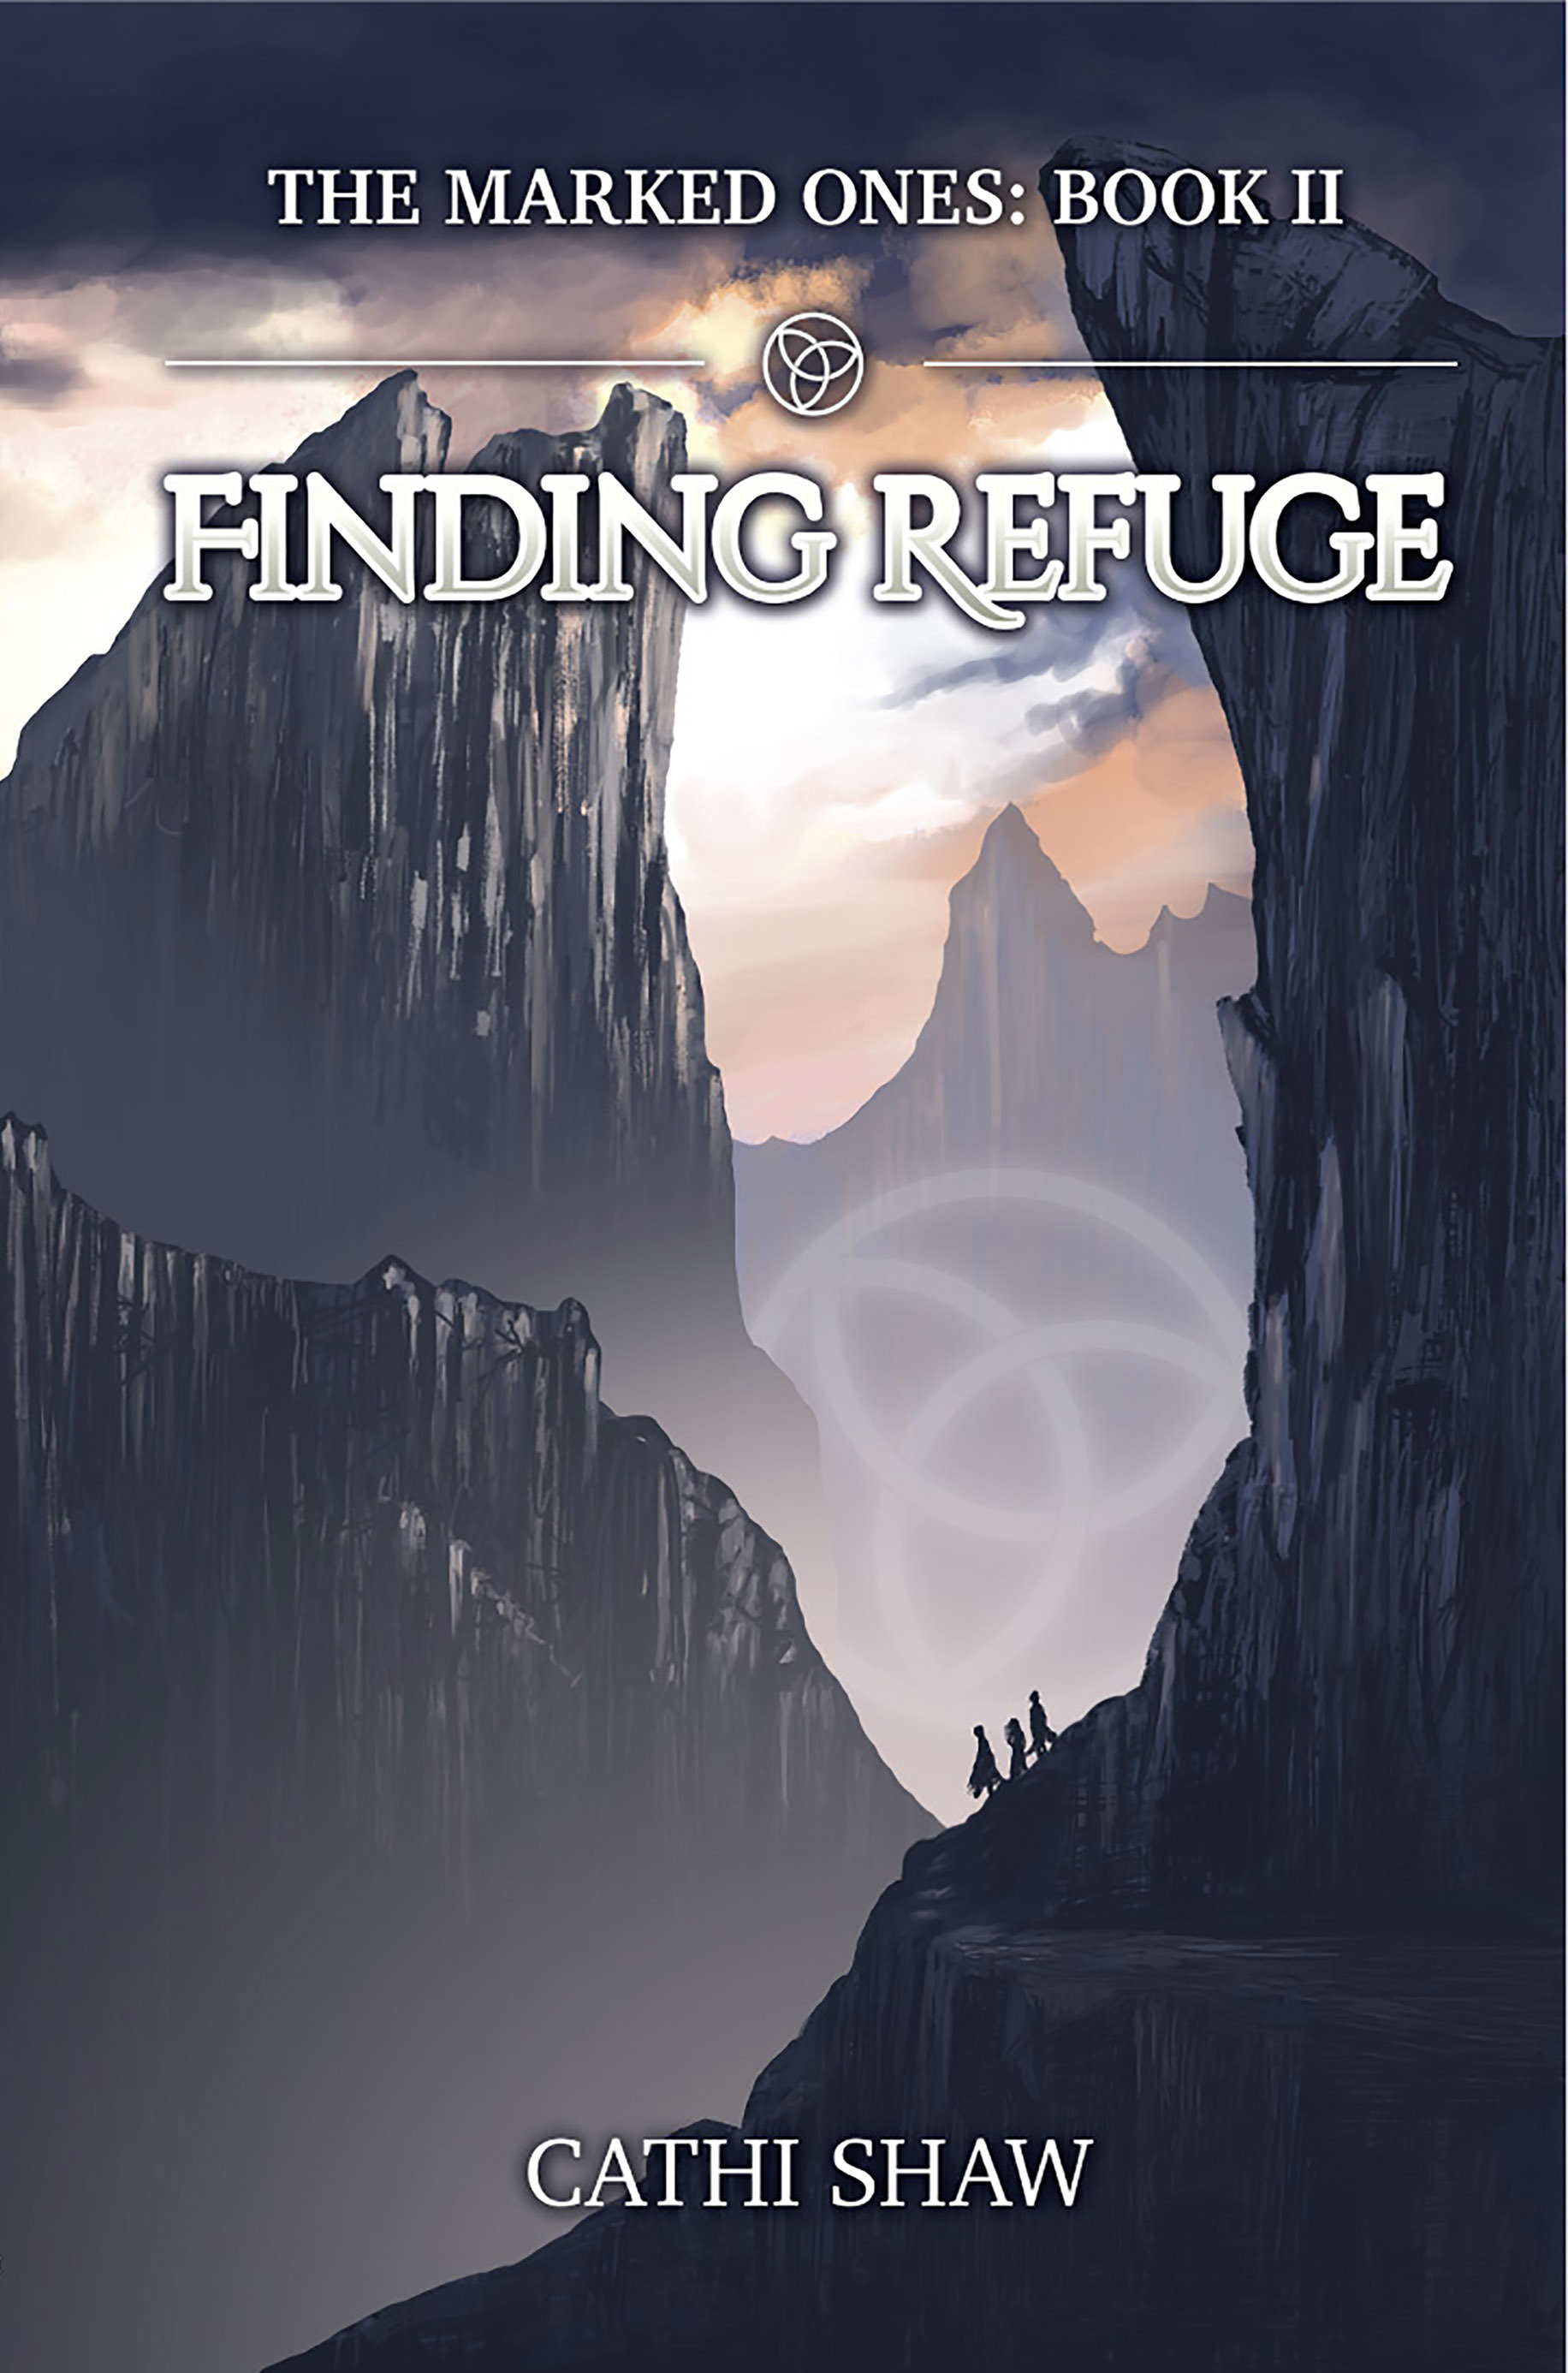 The Marked Ones: Finding Refuge 00006